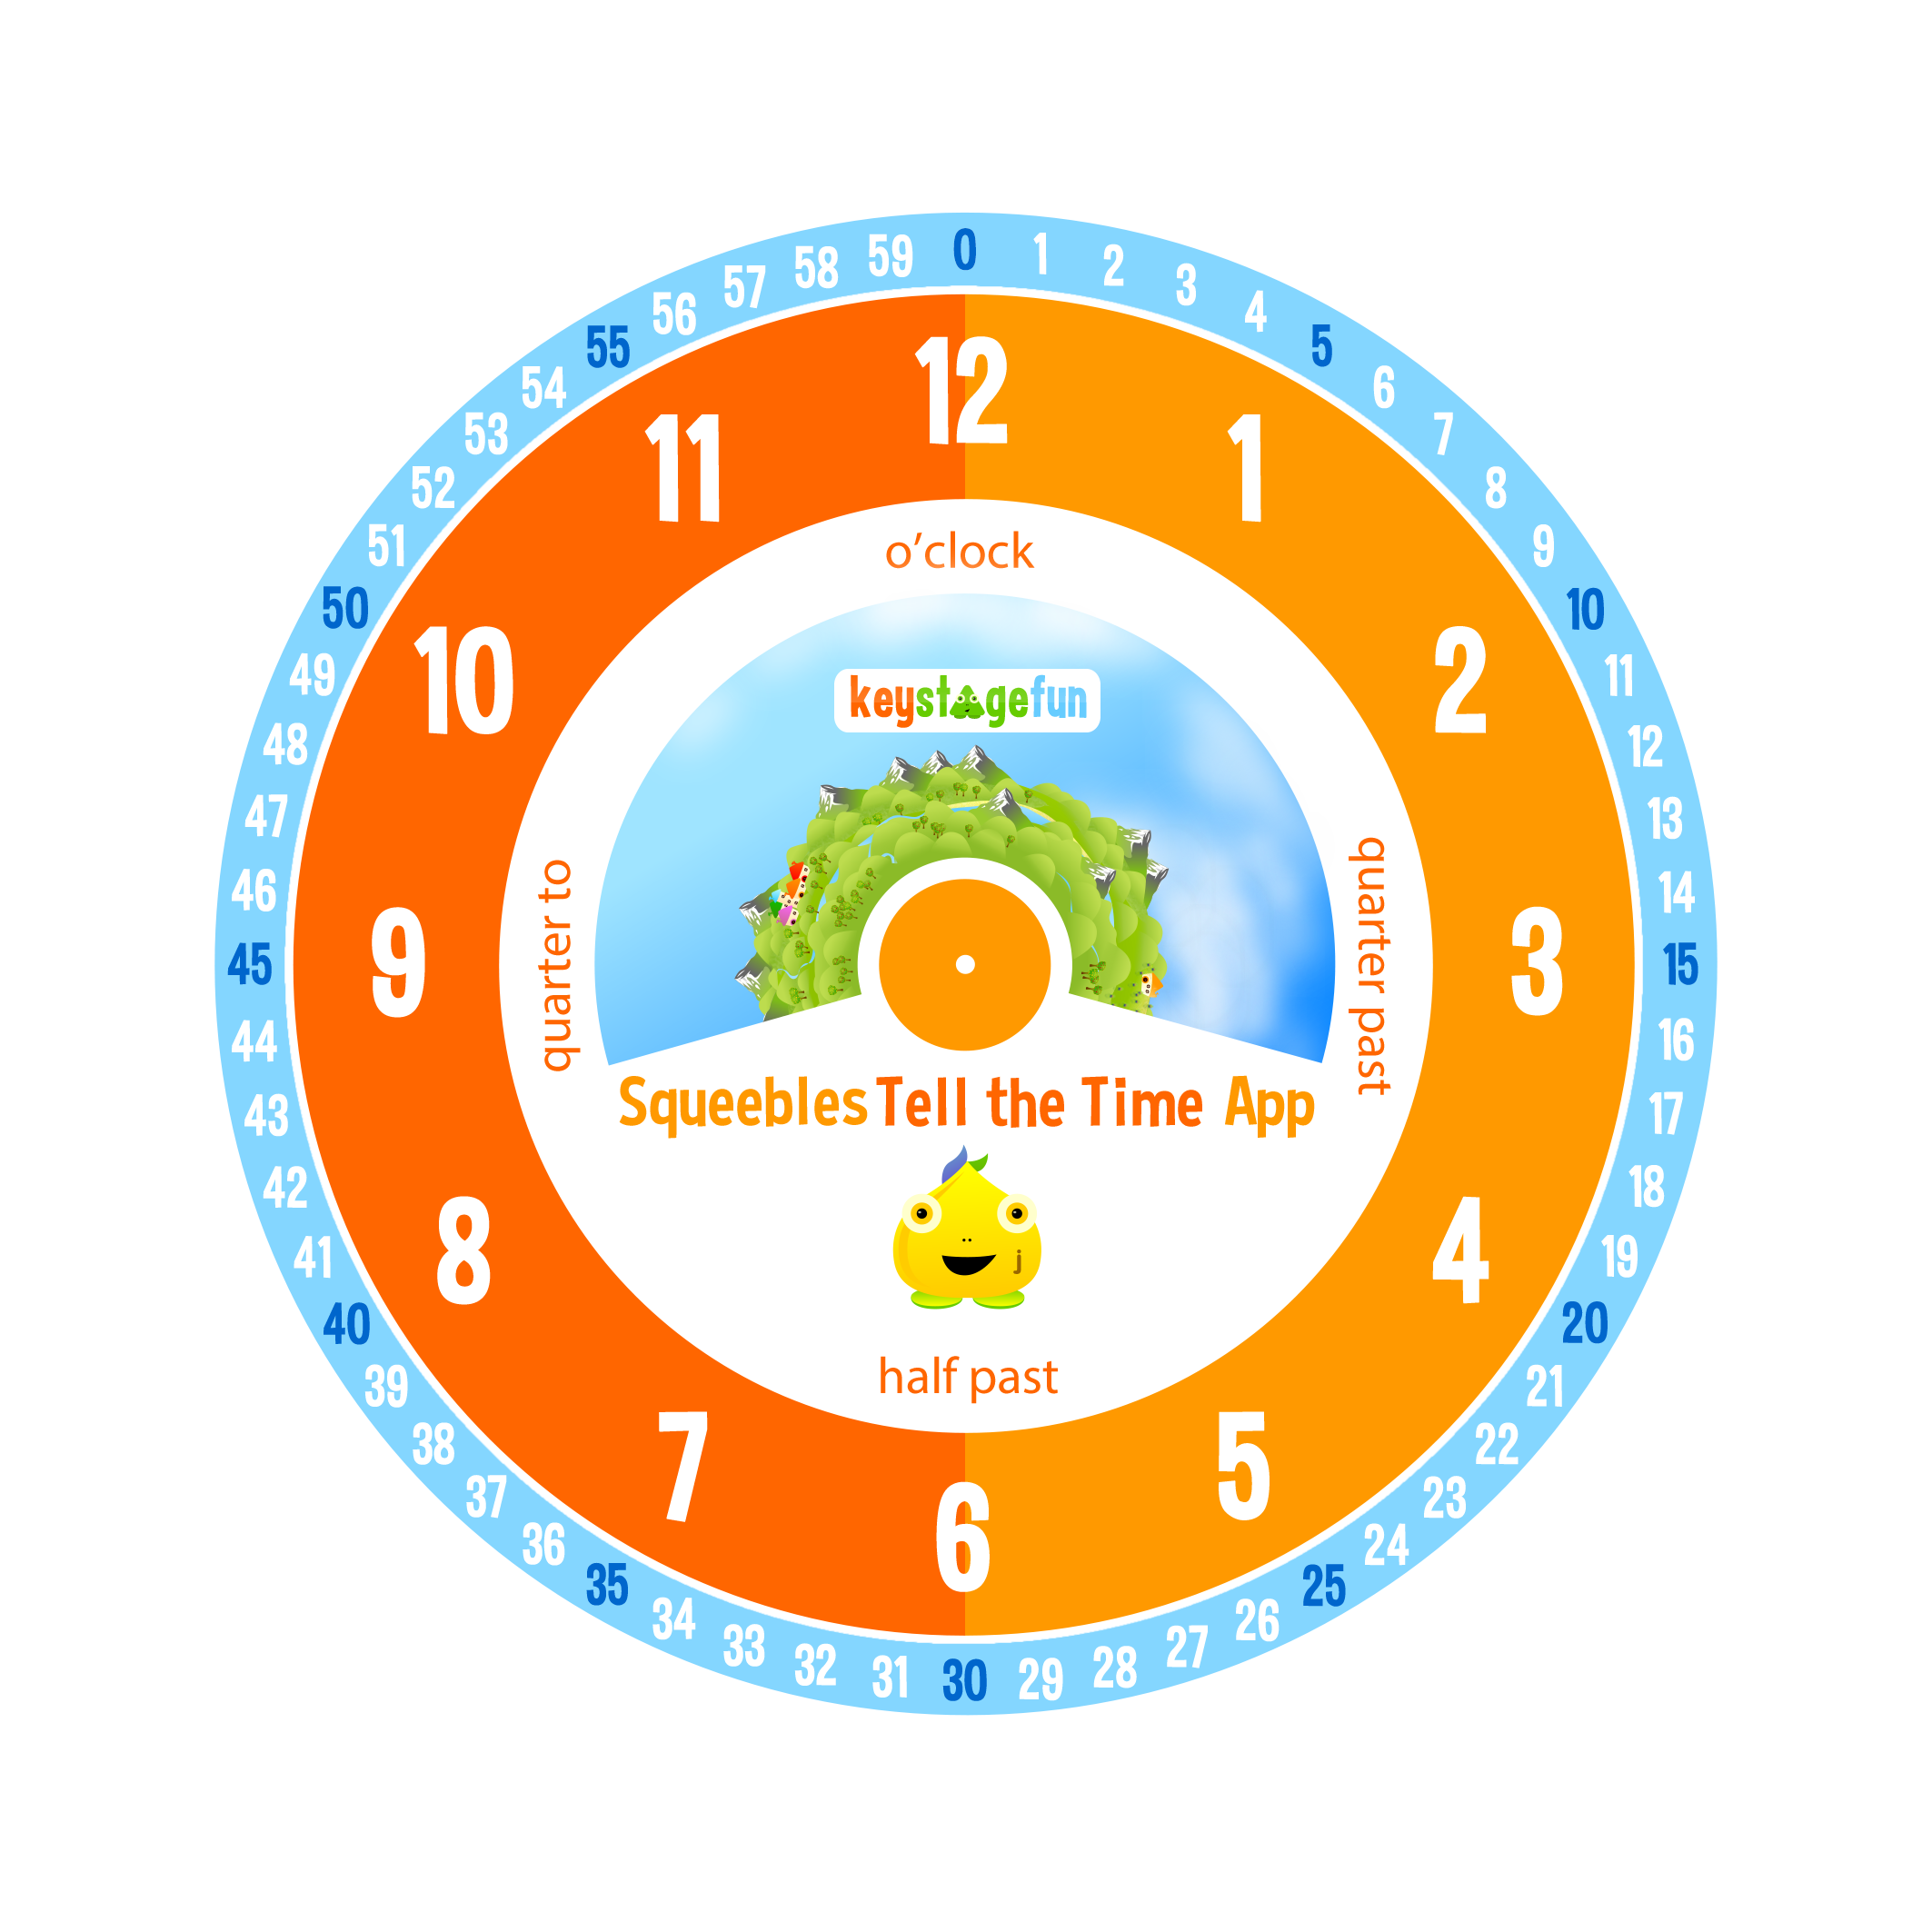 worksheet Printable Clock Face With Minutes clock faces pastto with 60 minutes around the face